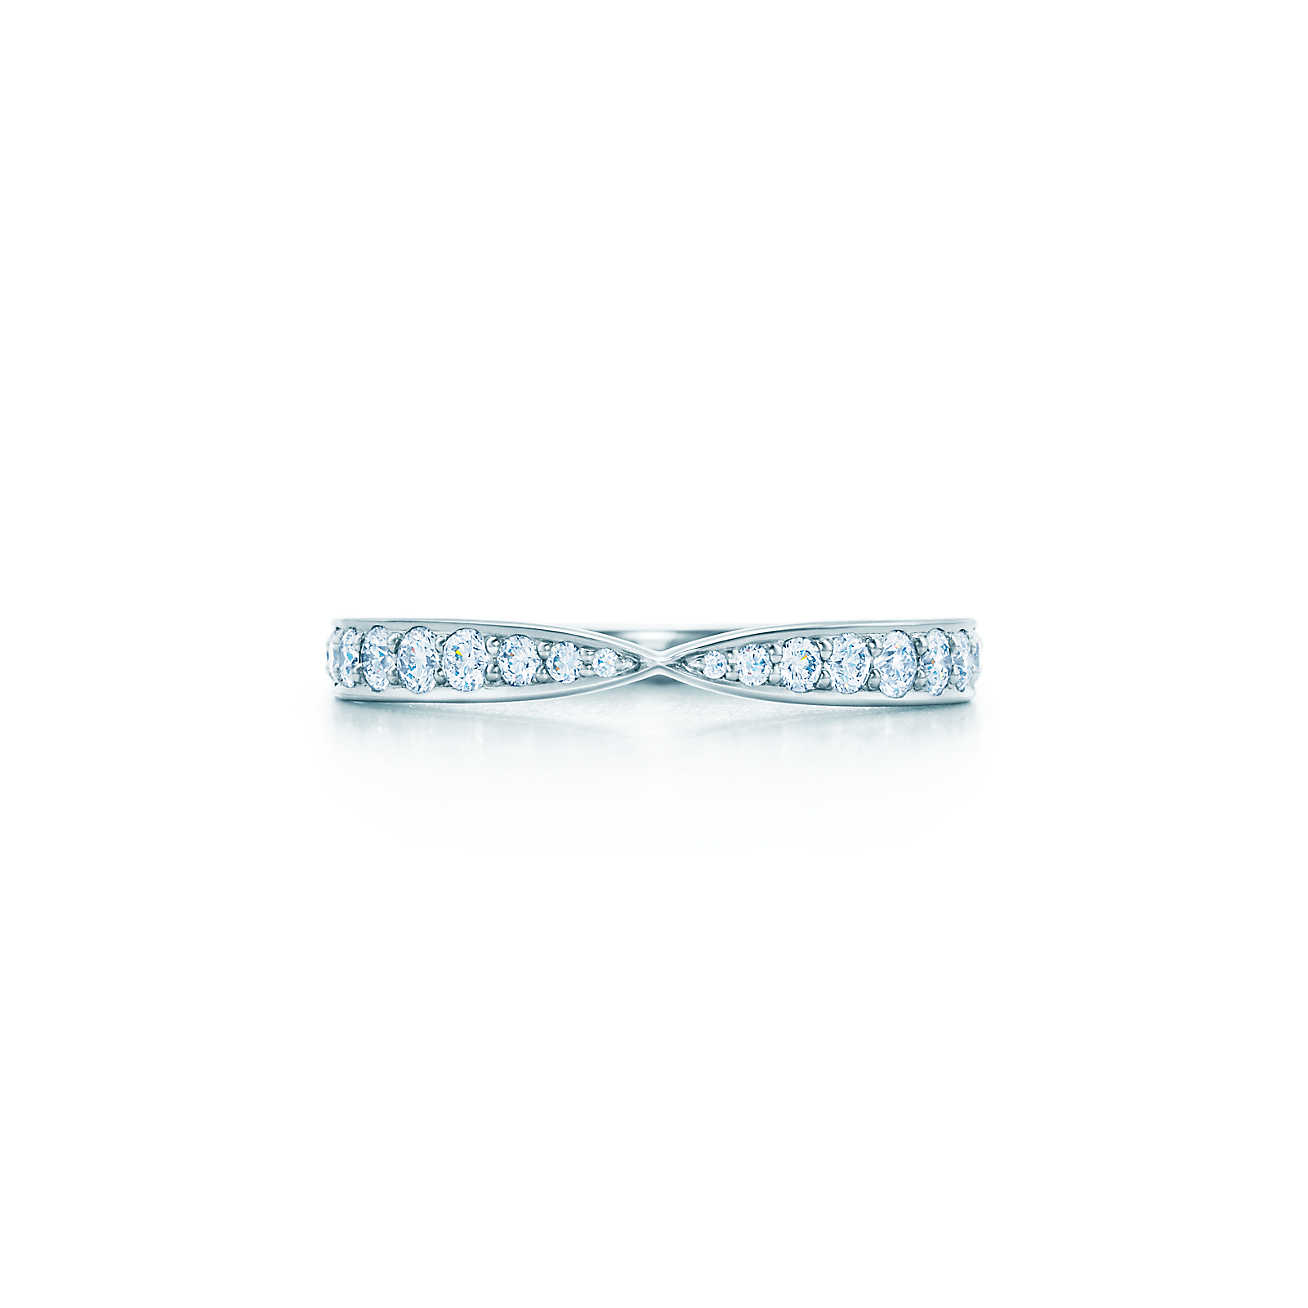 18ct white gold pinched graduated diamond set wedding ring- FJ8002